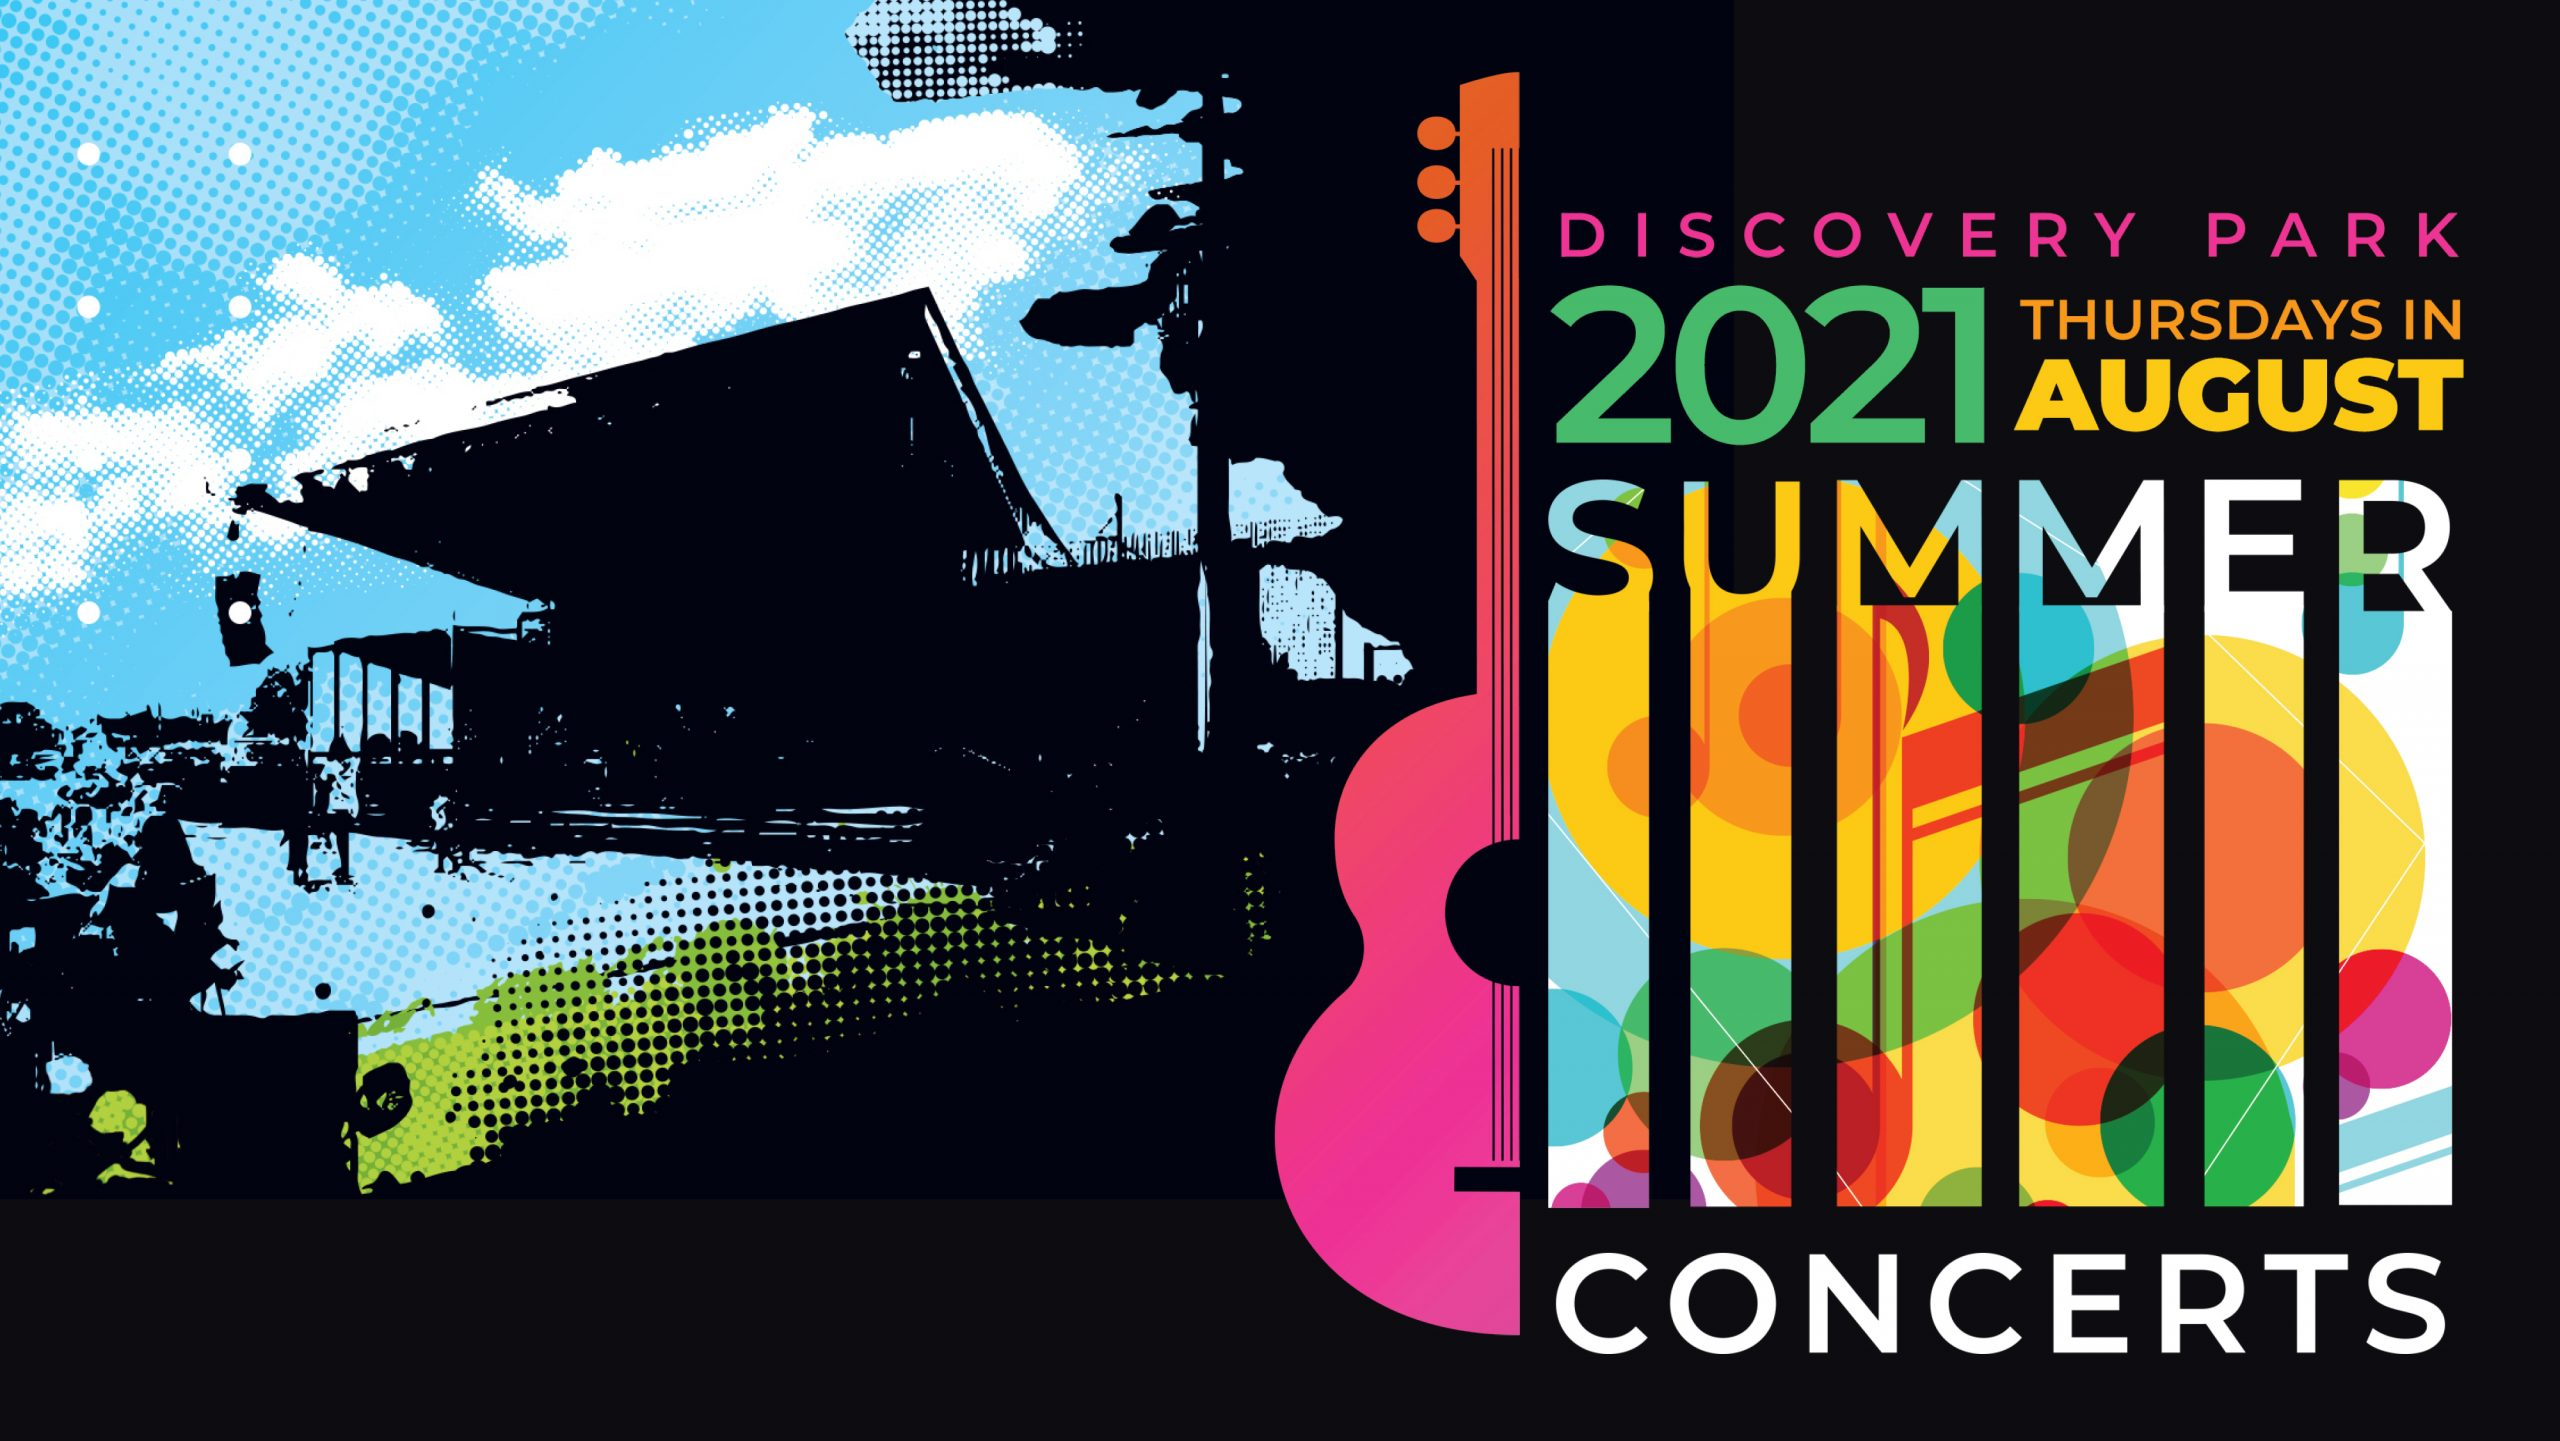 2021 Discovery Park Concert Series logo